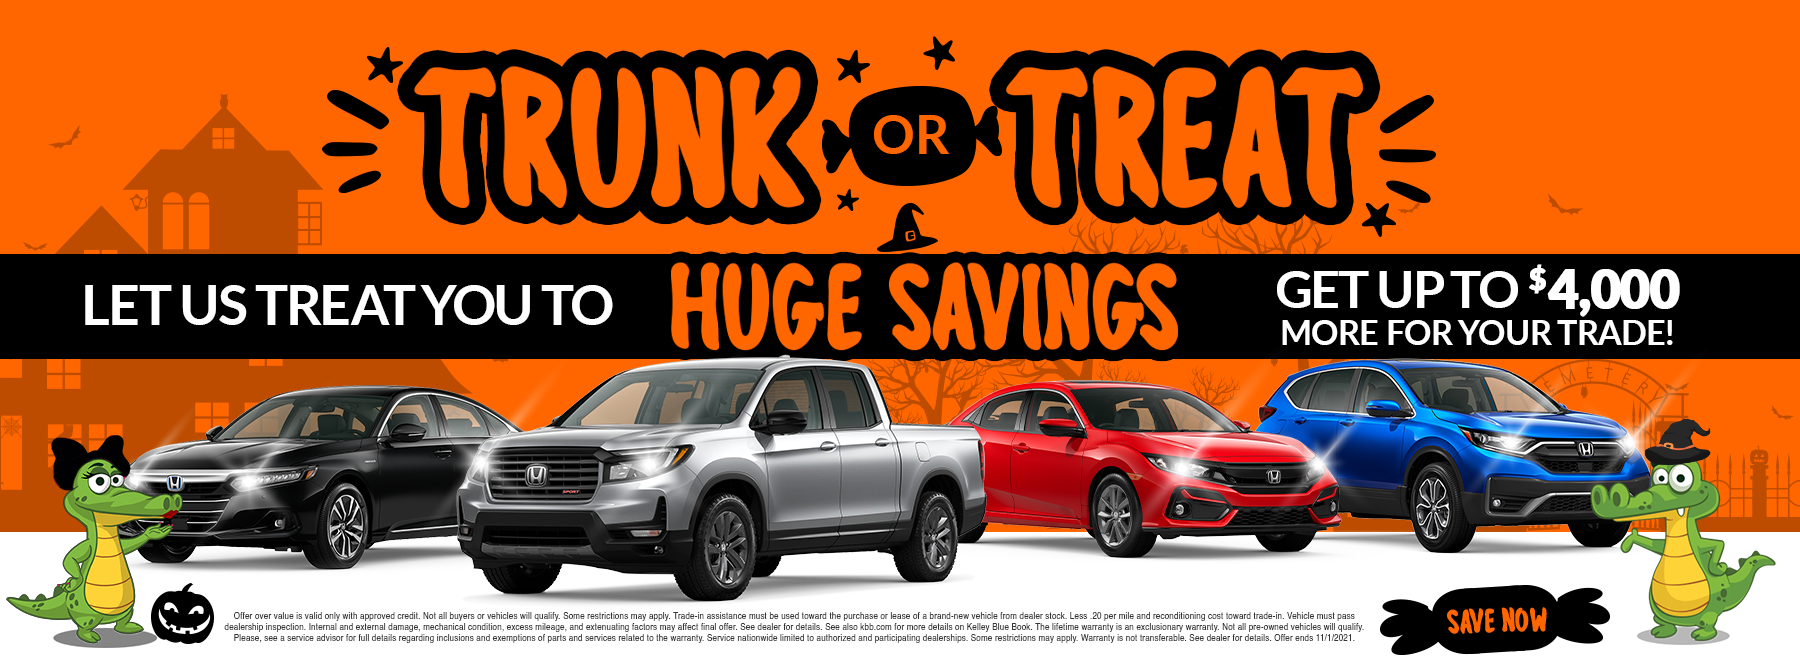 Trunk Or Treat | Let Us Treat You To Huge Savings | Get Up To $4,000 More For Your Trade!